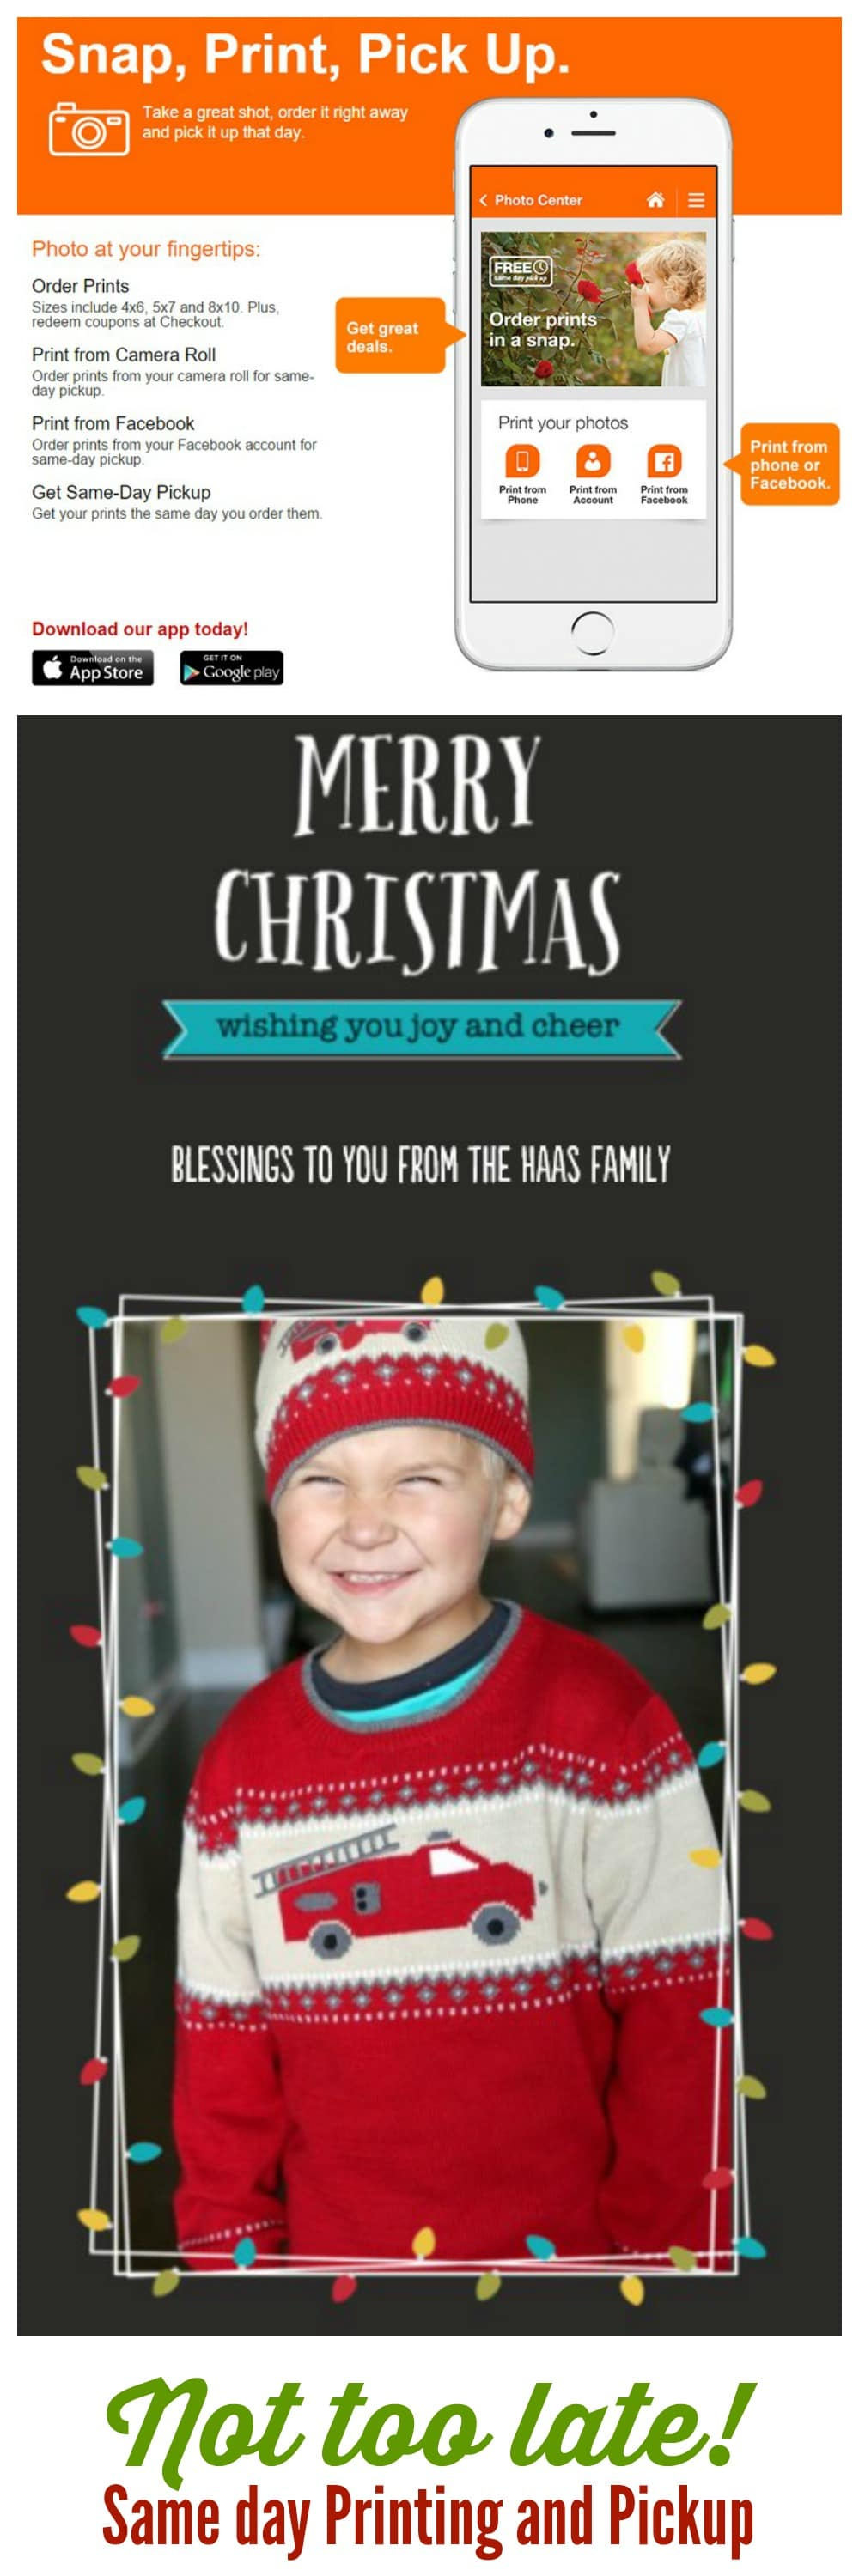 Not too late to get Christmas Cards or photo books! SAME DAY PRINTING AND PICK UP here!